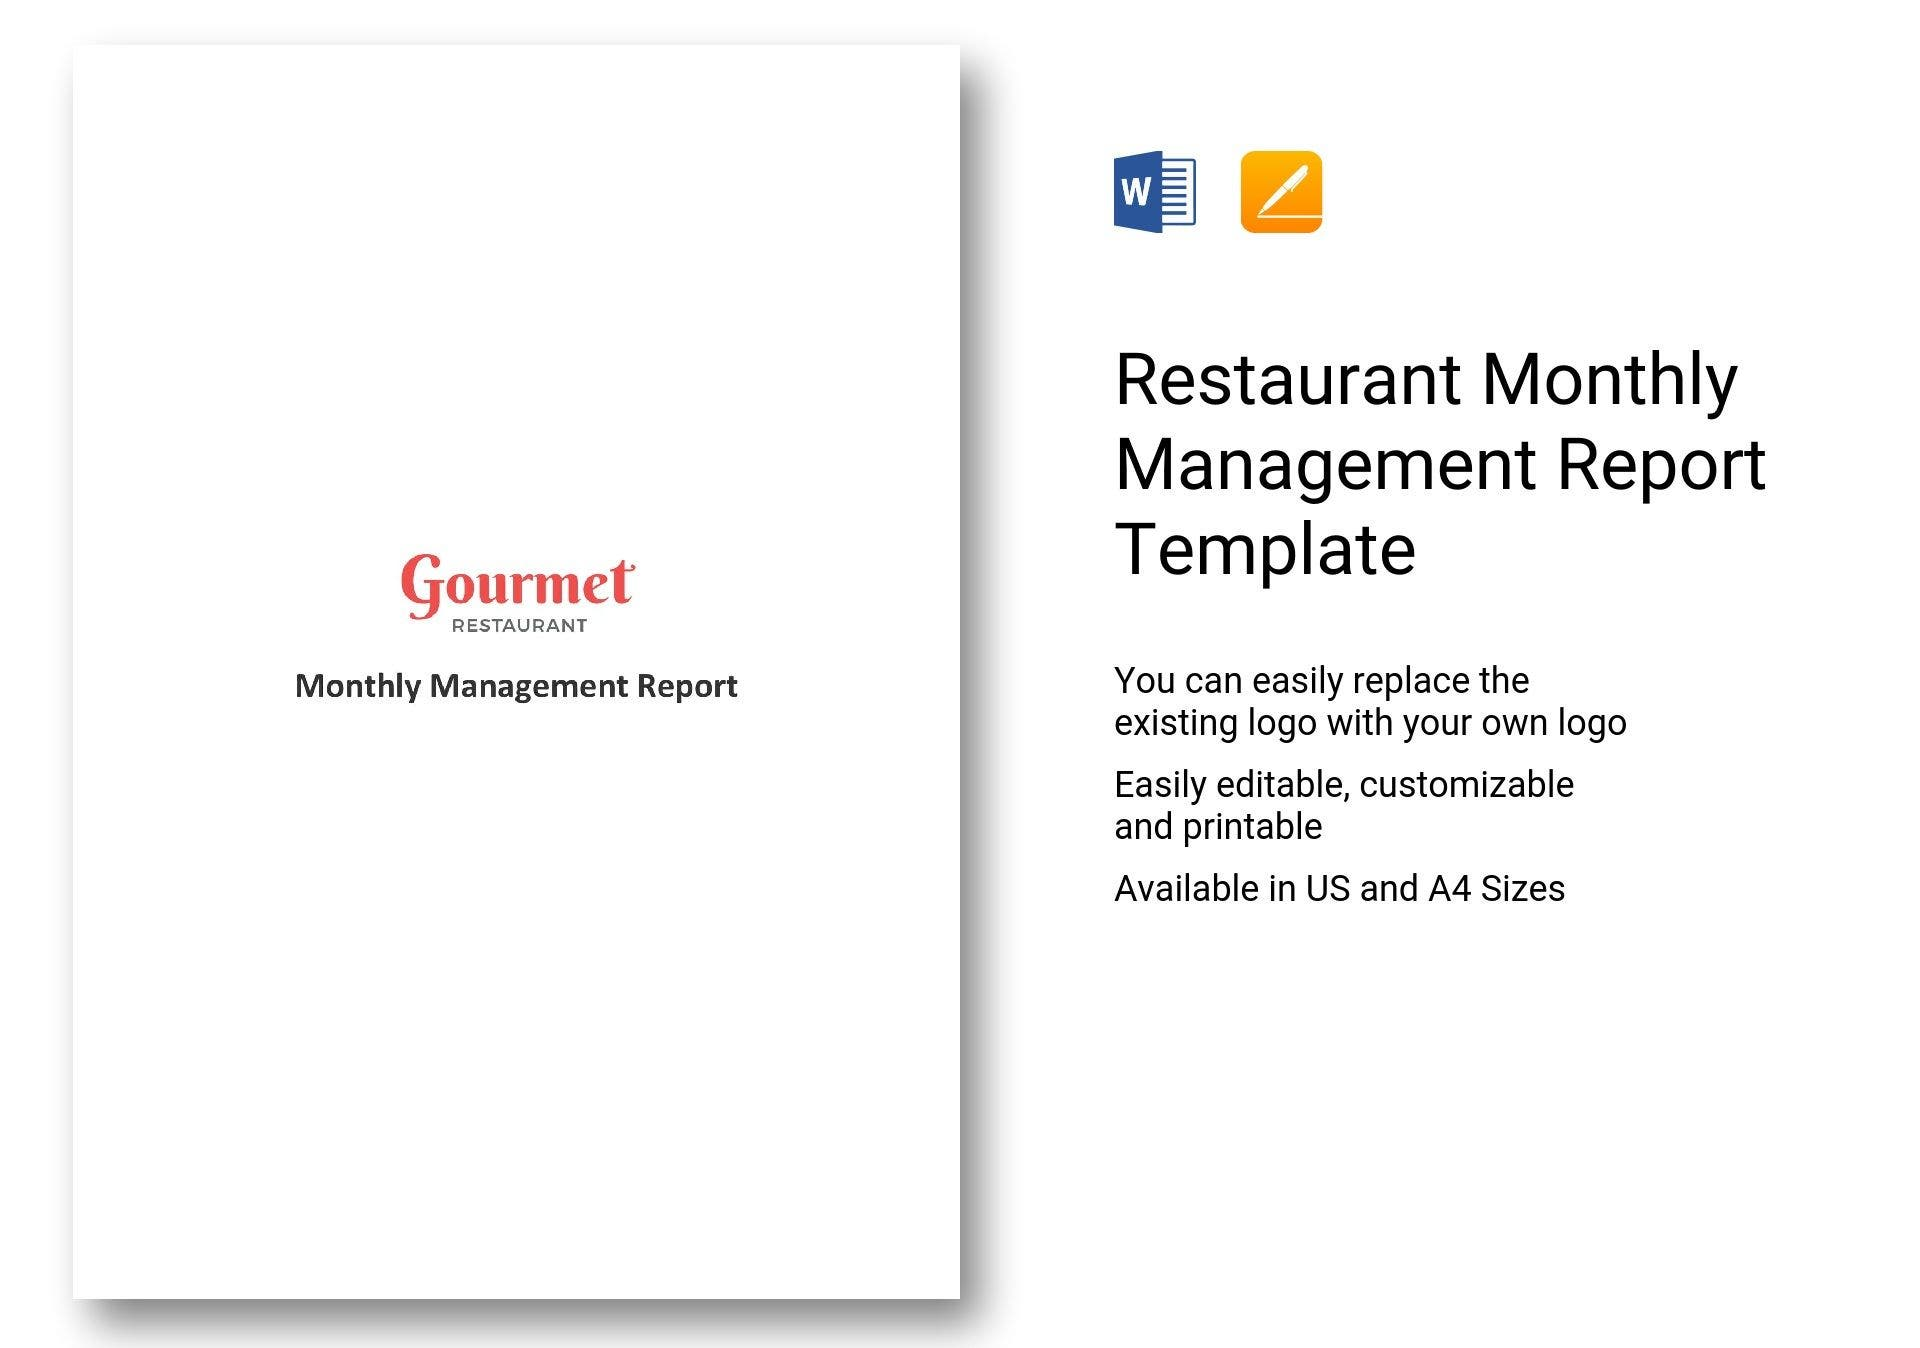 restaurant monthly management report template